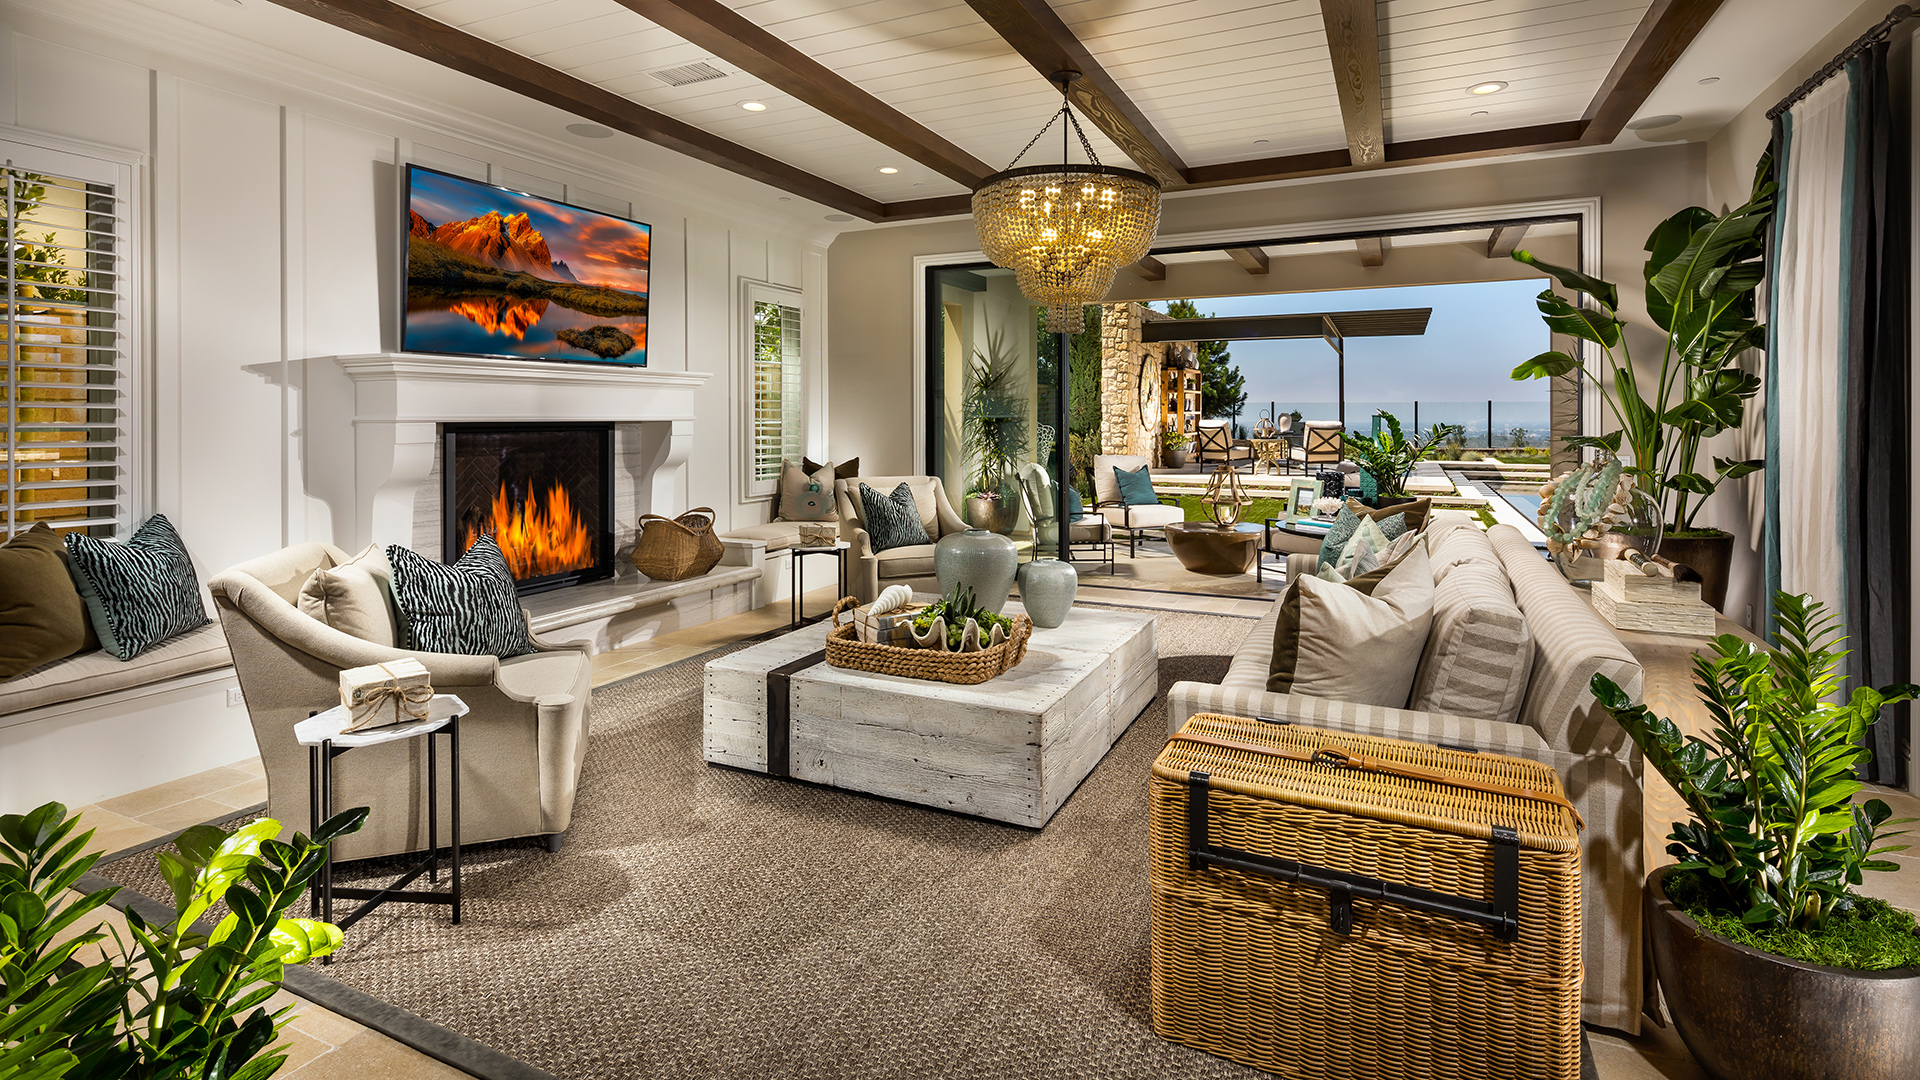 Luxurious open-concept home designs perfect for entertaining.